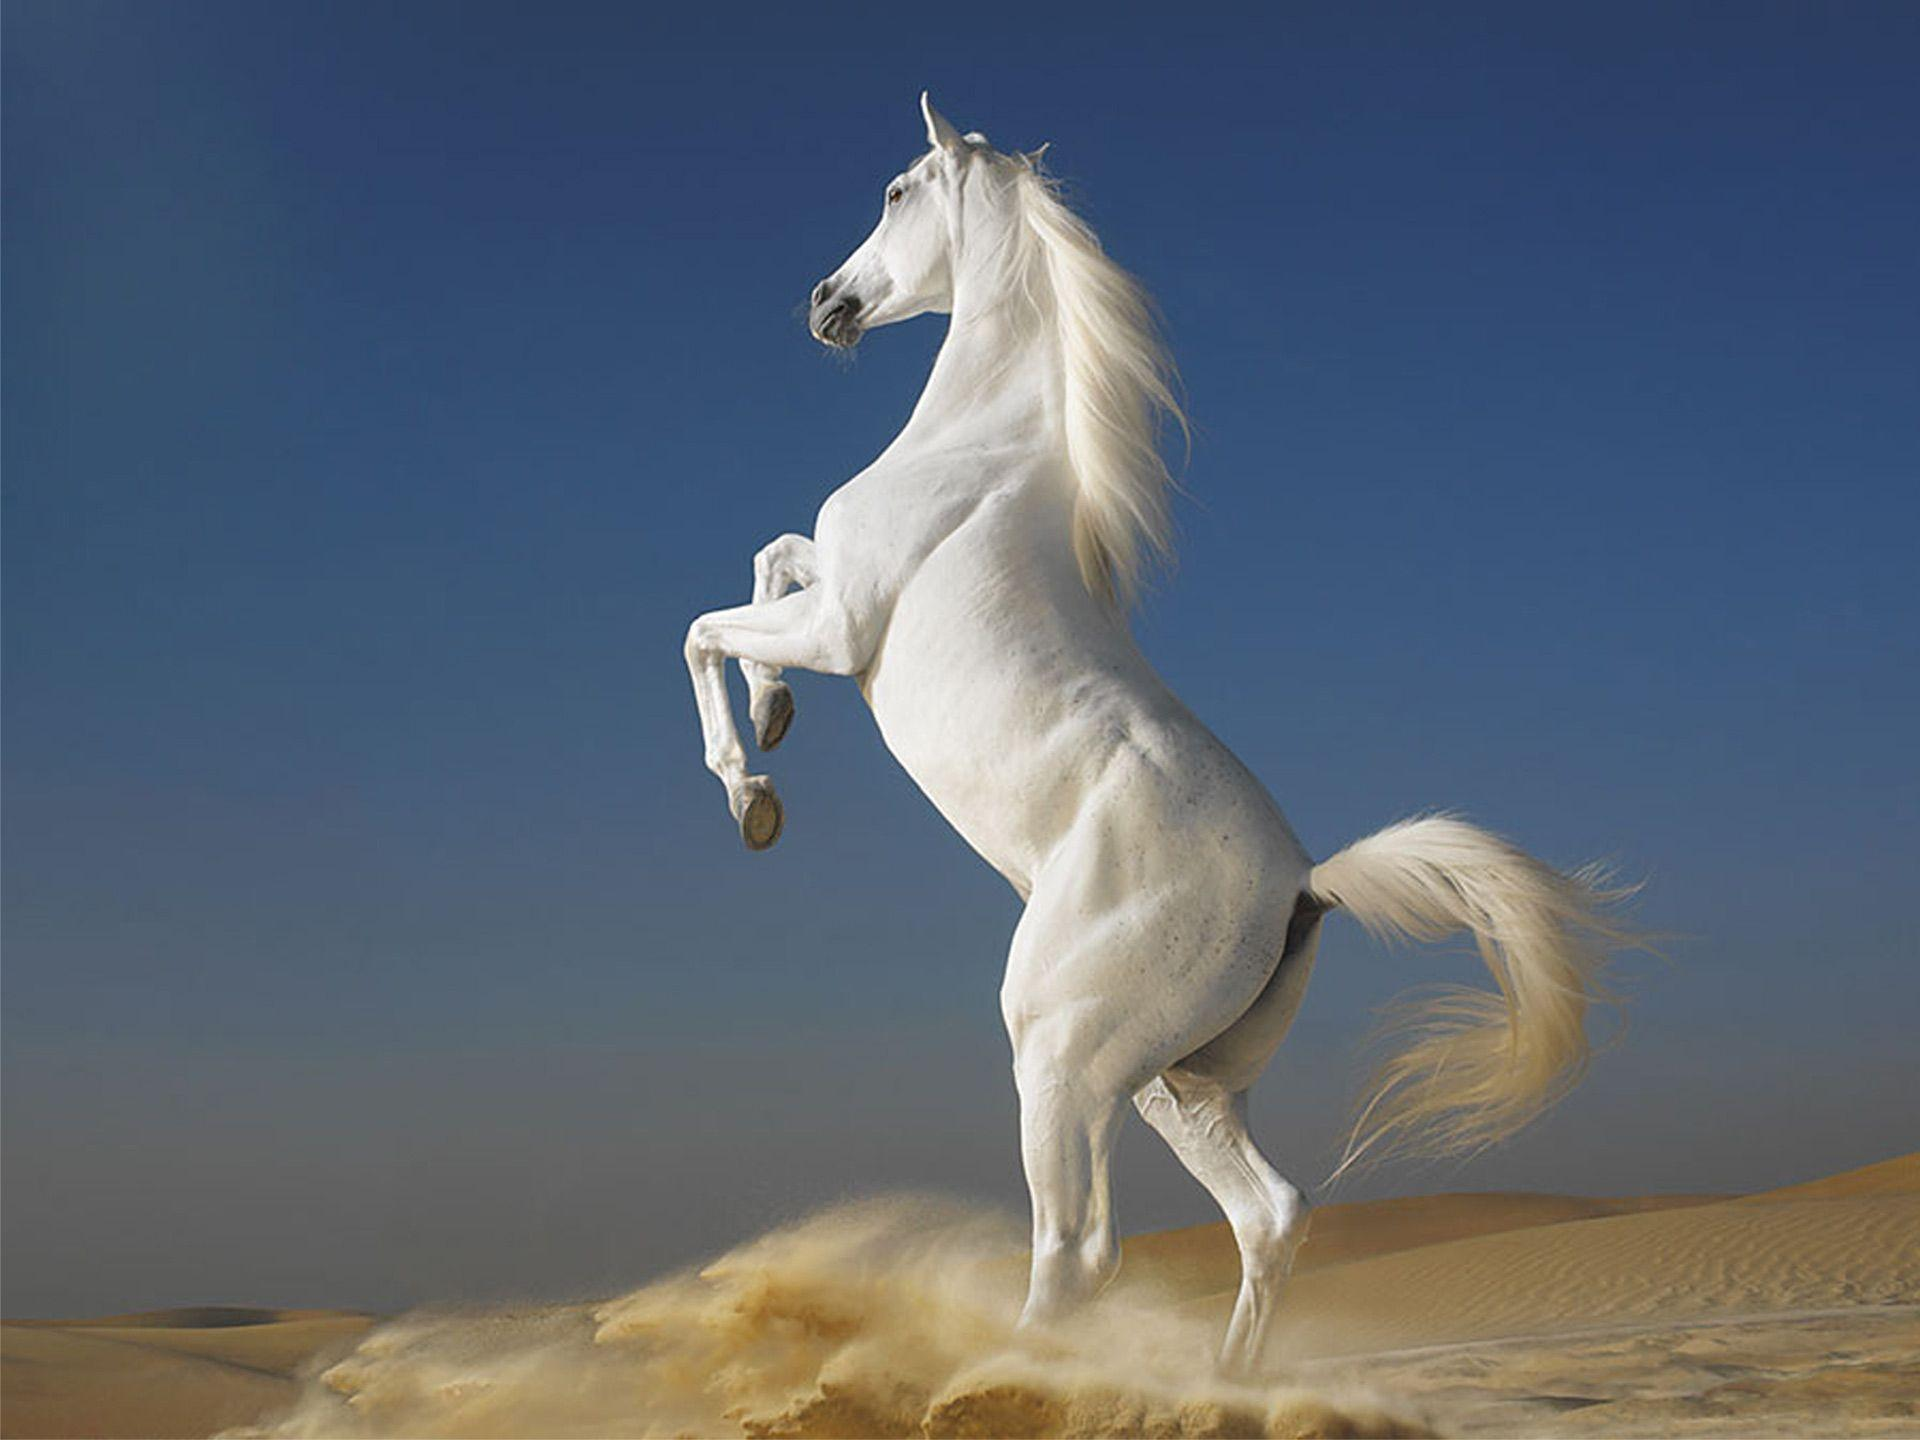 Adorable Horse HD Pictures Horse Wallpaper Hd Wallpapers